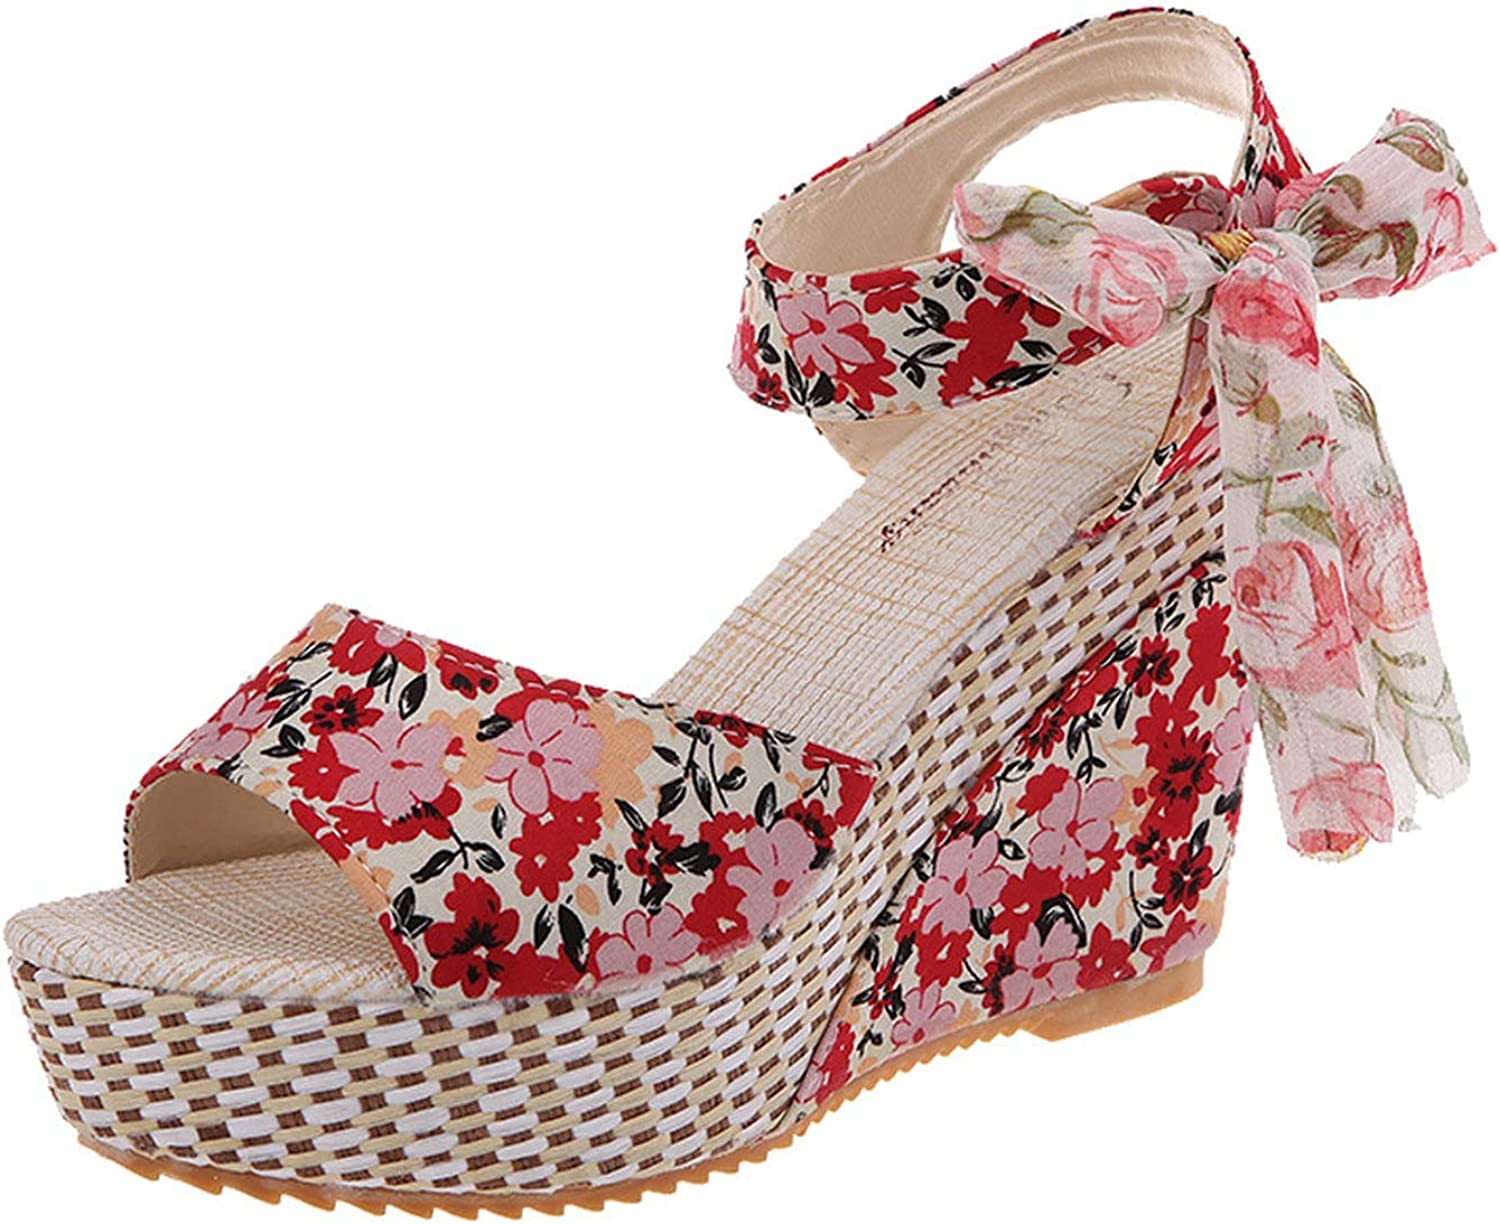 TanYQWGK Summer Shoes Woman Flower Peep Toe Wedges Lace Up Thick Bottom Flatform Shoes Sandals Zapatos Red